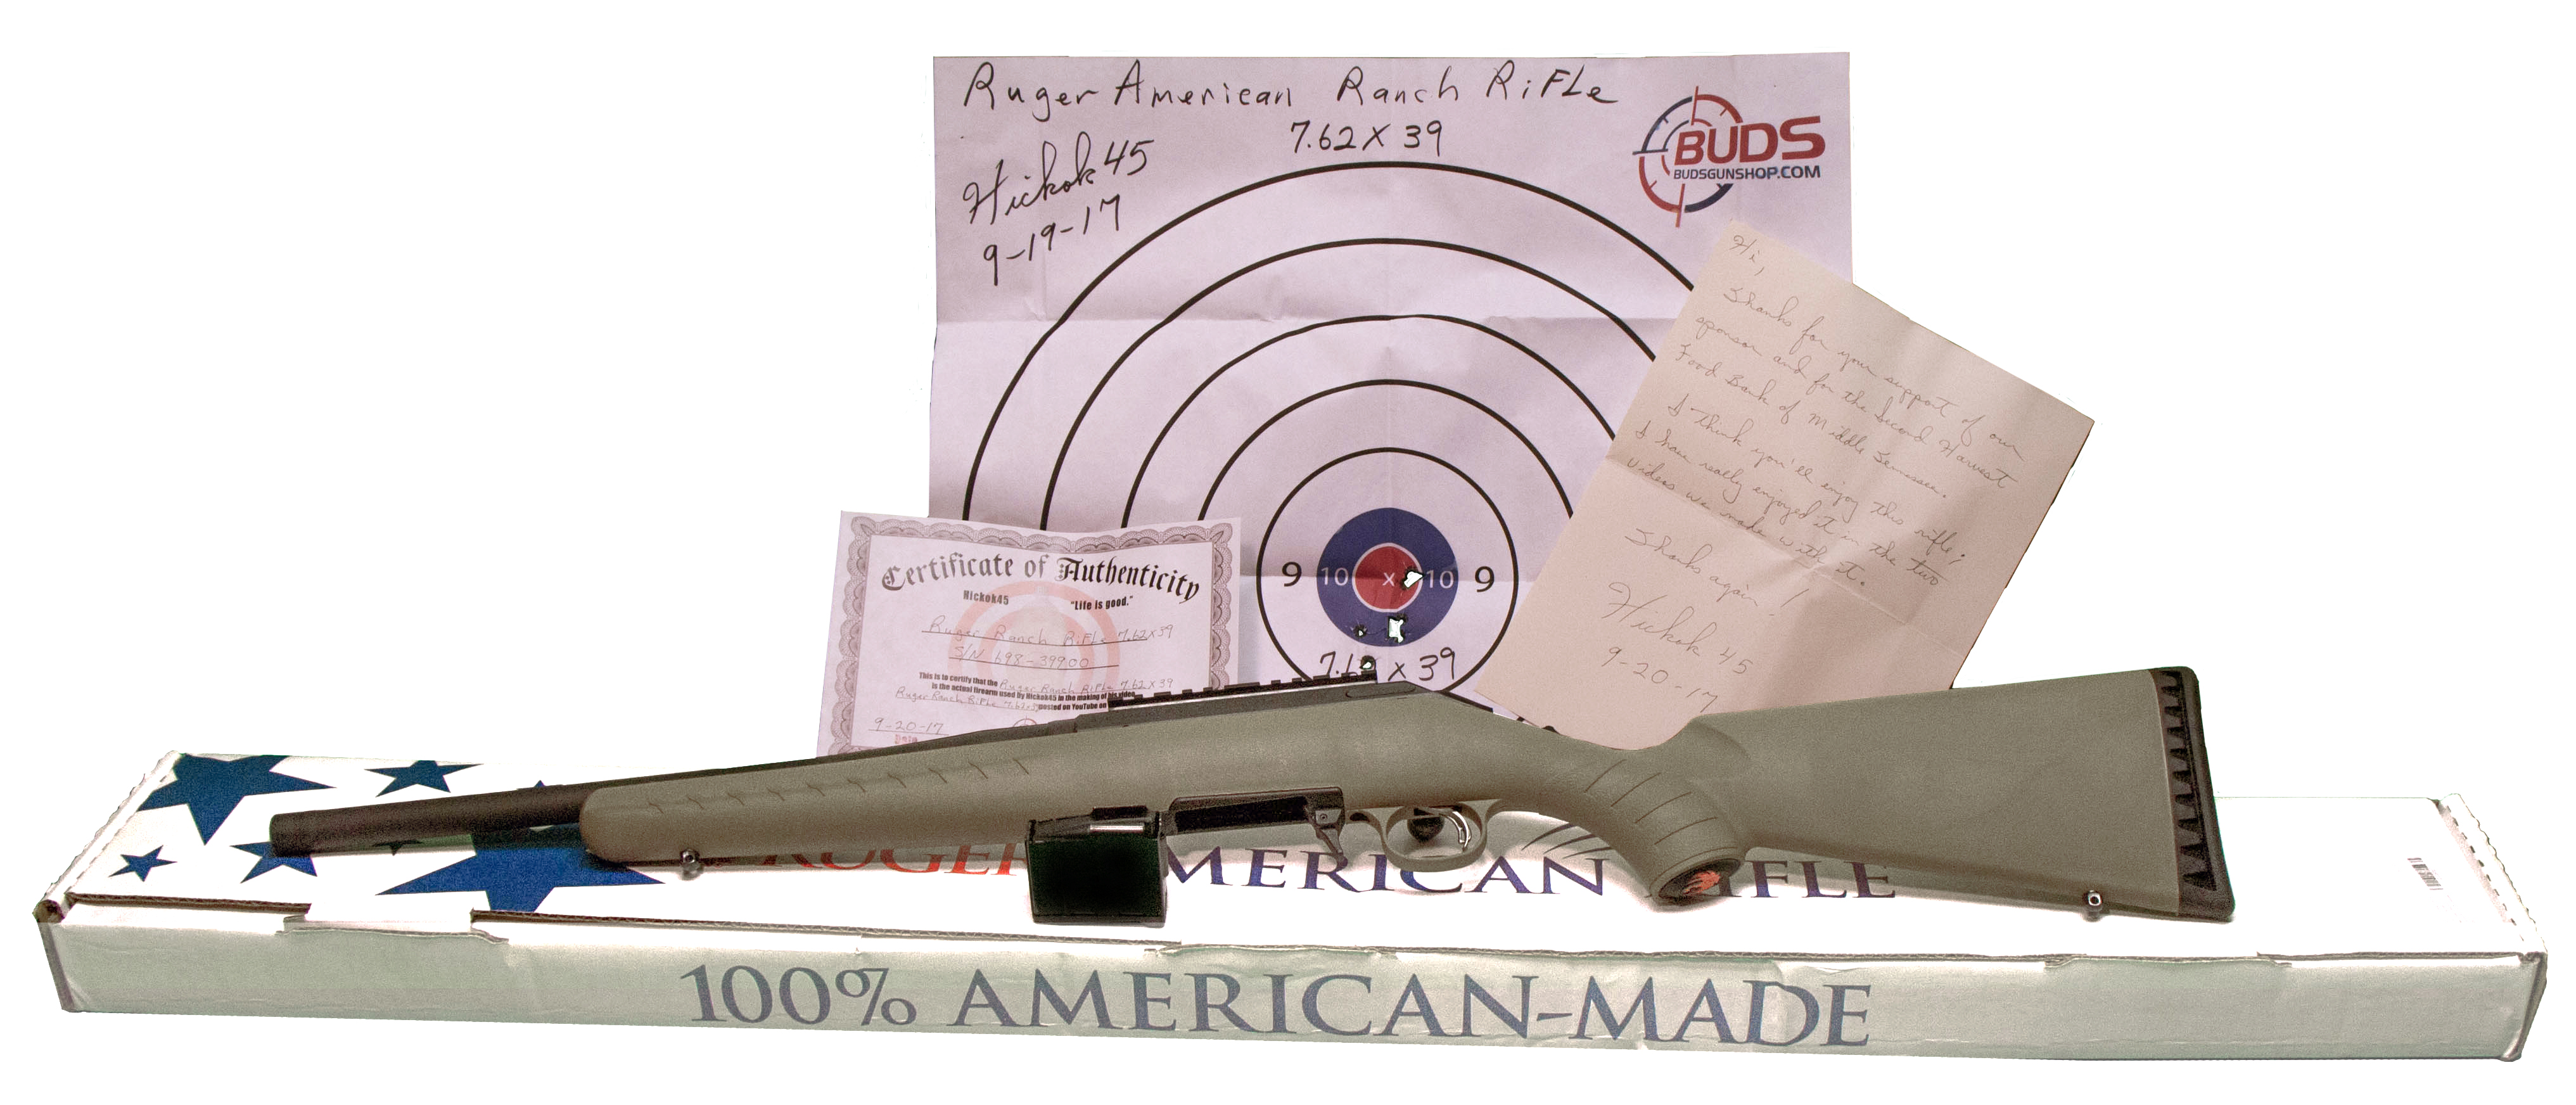 RUGER AMERICAN RANCH RIFLE 7 62X39 (Auction ID: 9580419, End